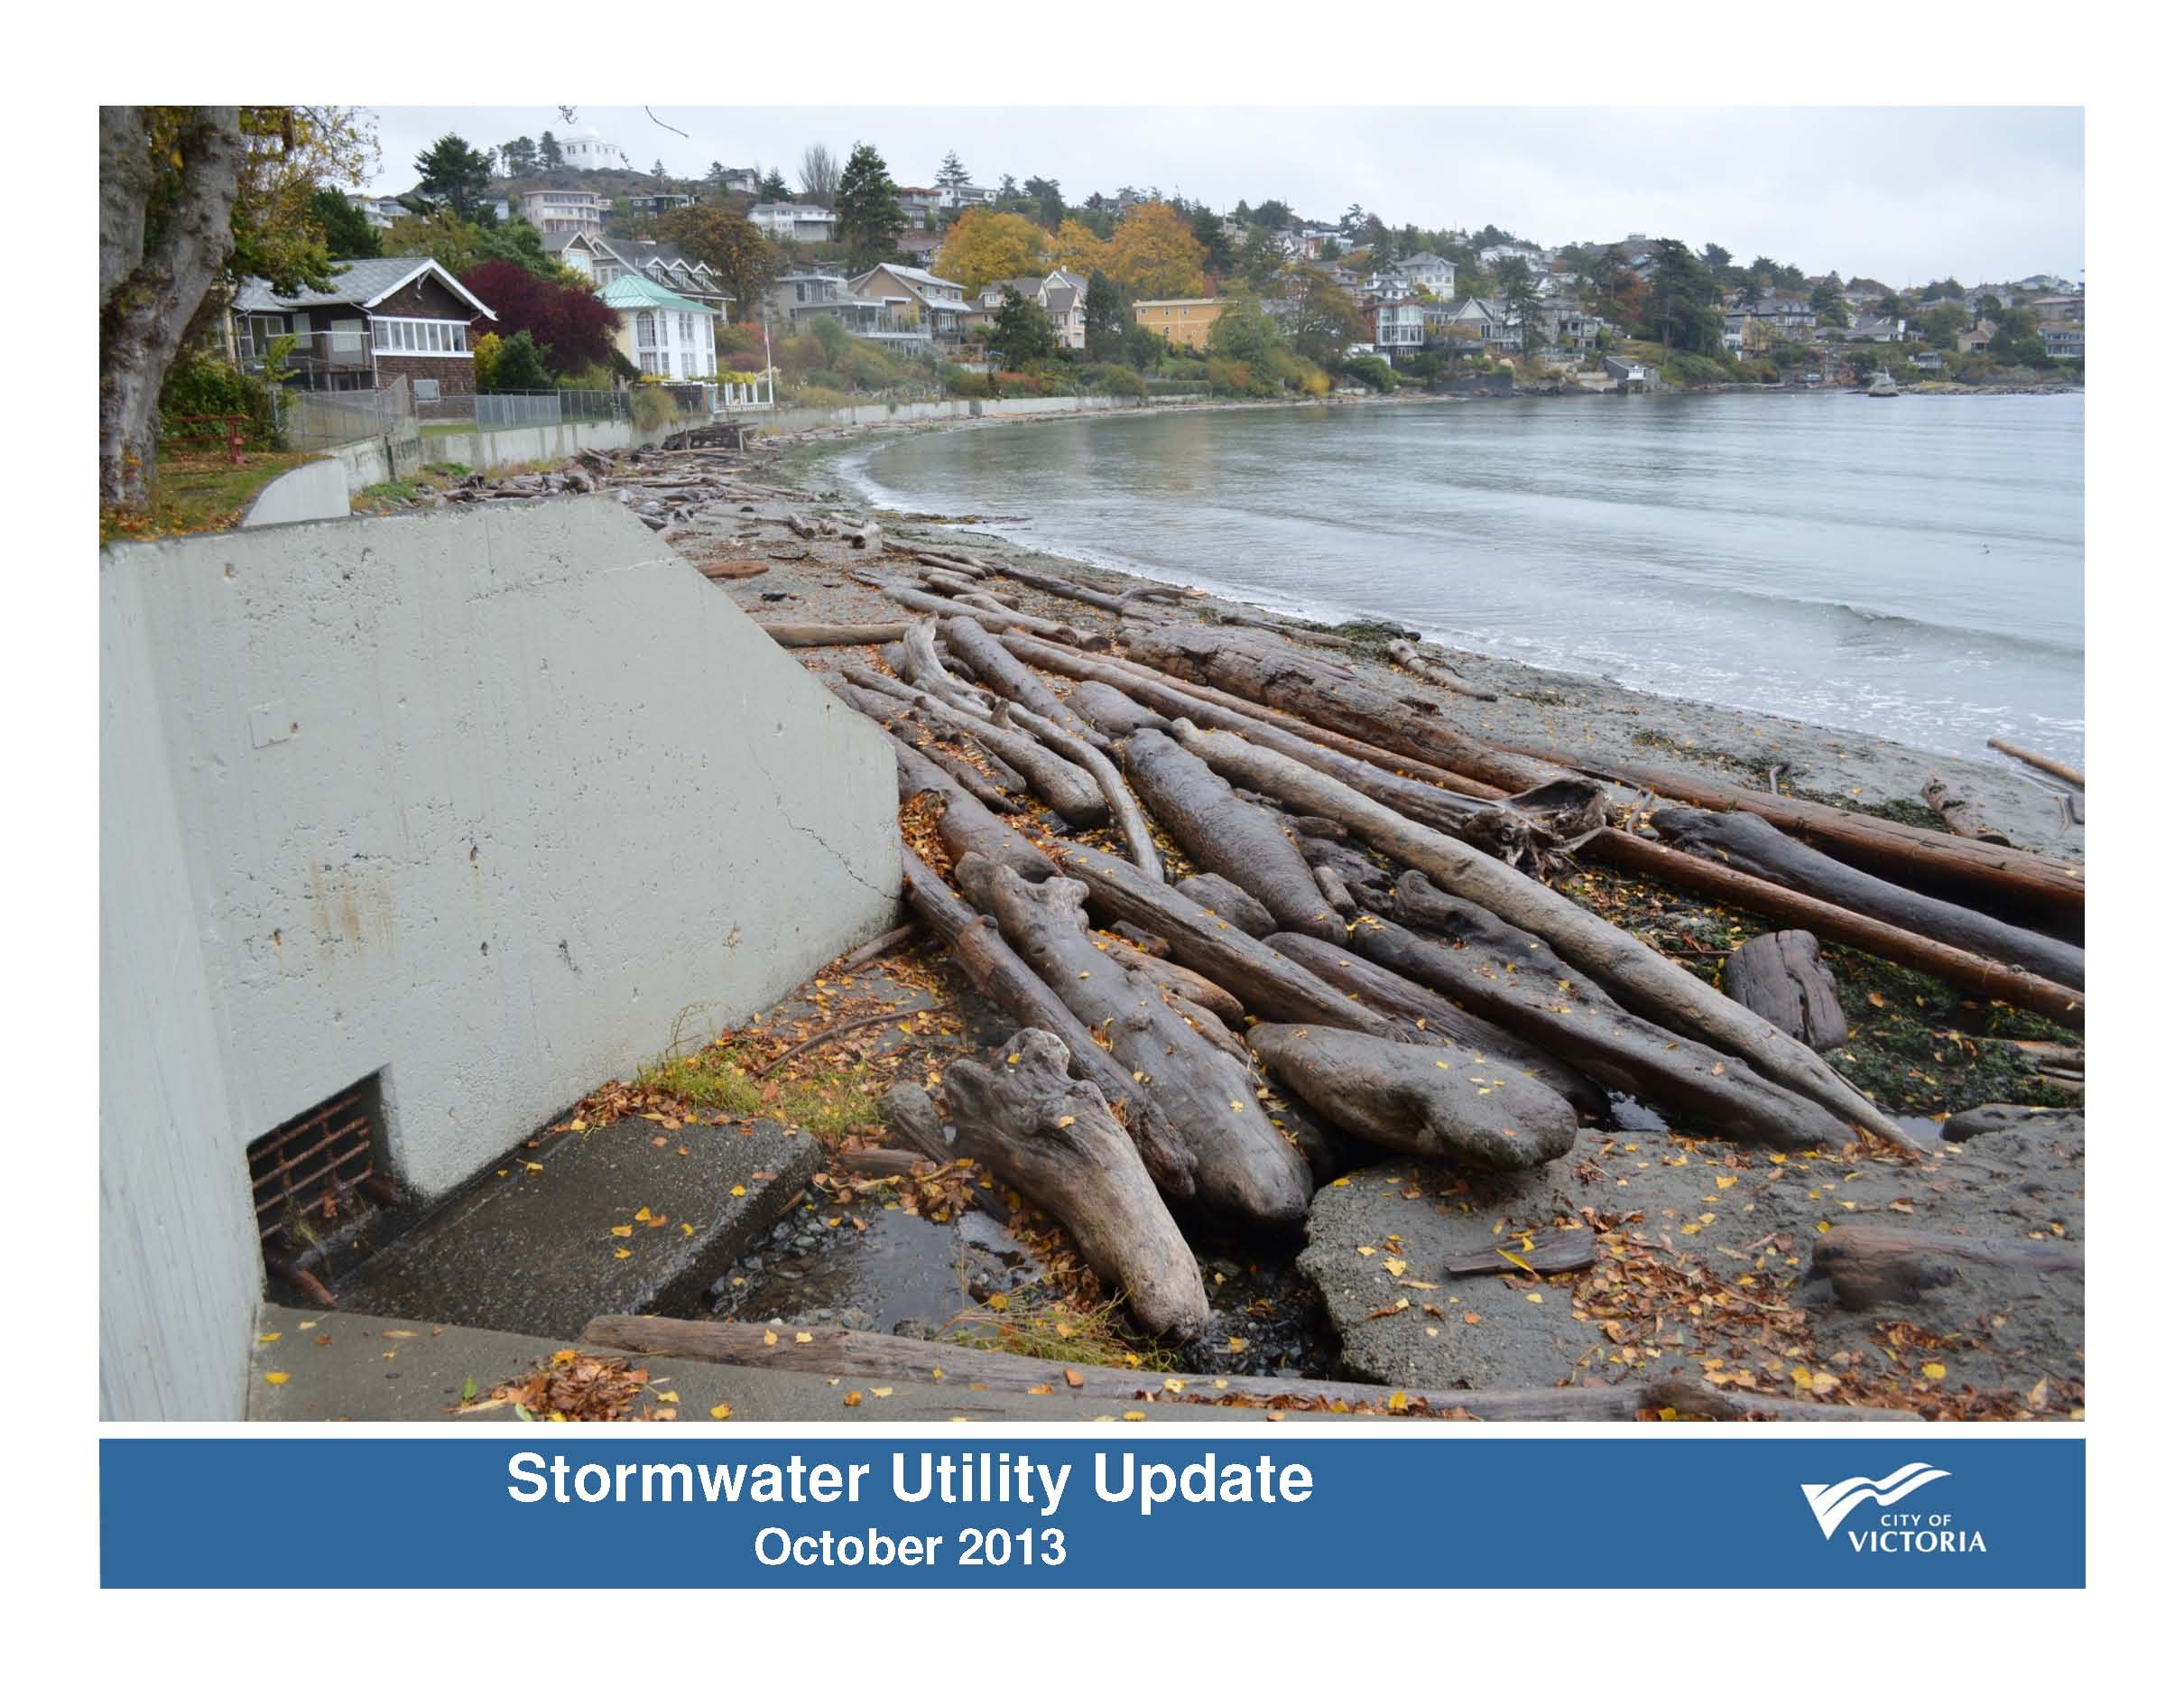 Victoria_Stormwater-Utility_powerpoint-presentation_Oct-2013_title-slide